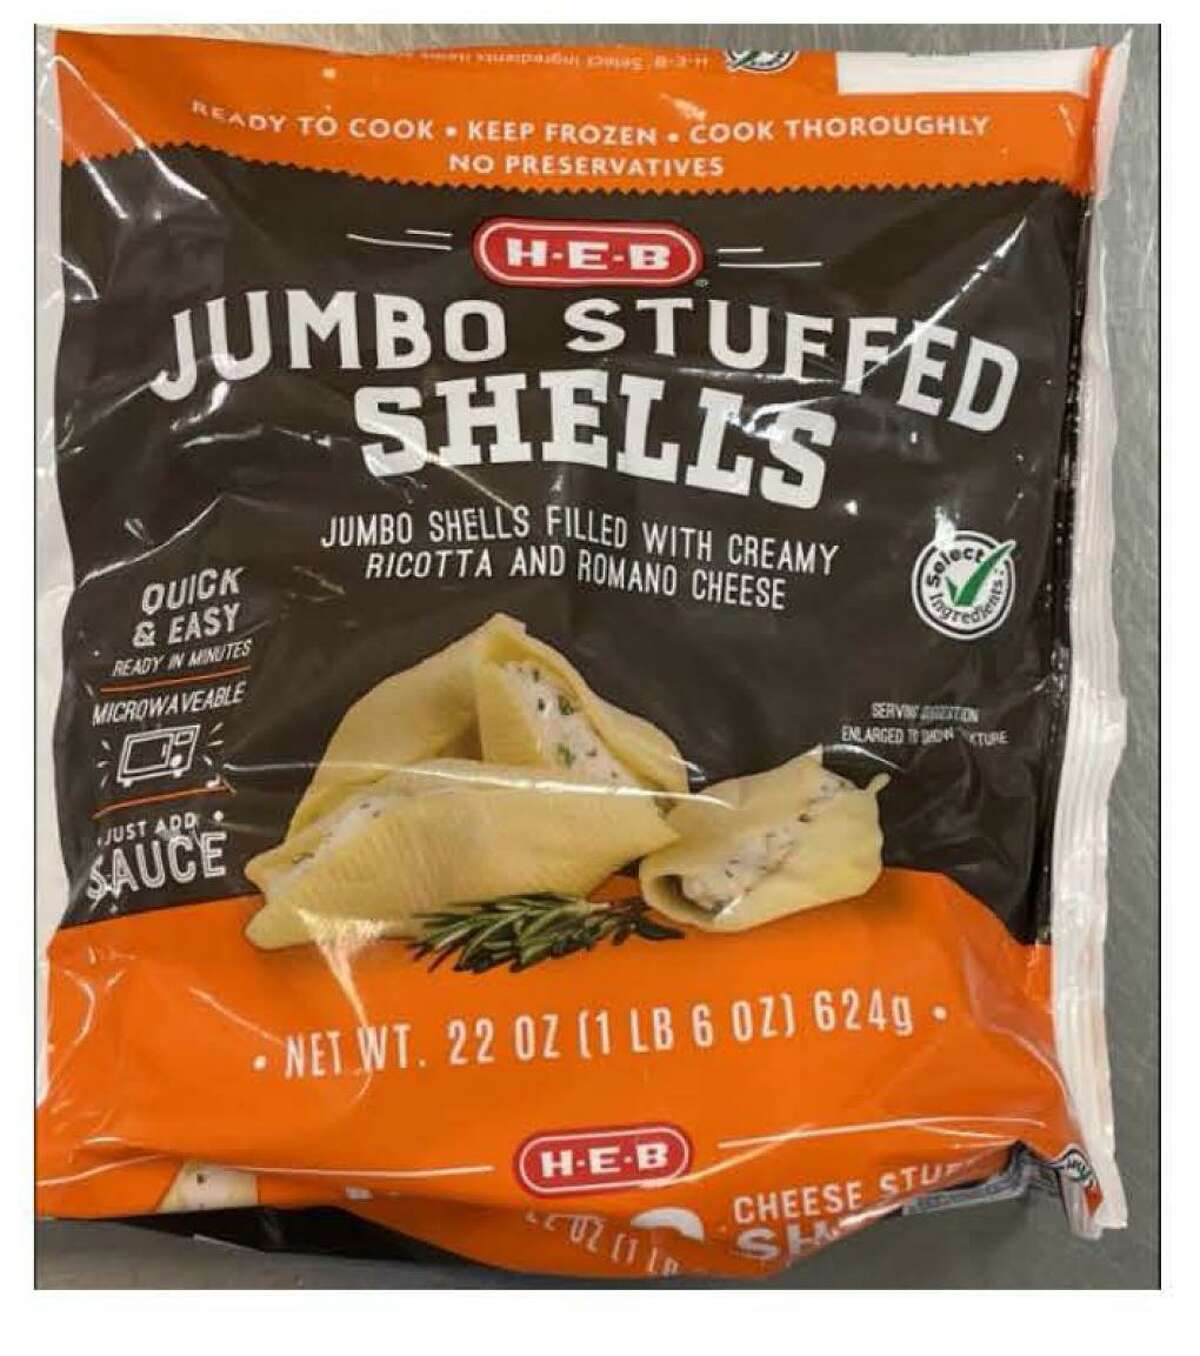 The San Antonio-based company announced on its website on Tuesday, September 14 that the H-E-B jumbo stuffed shells were pulled from the store due to a potential presence of foreign material. The shells are made by Seviroli Foods, Inc.